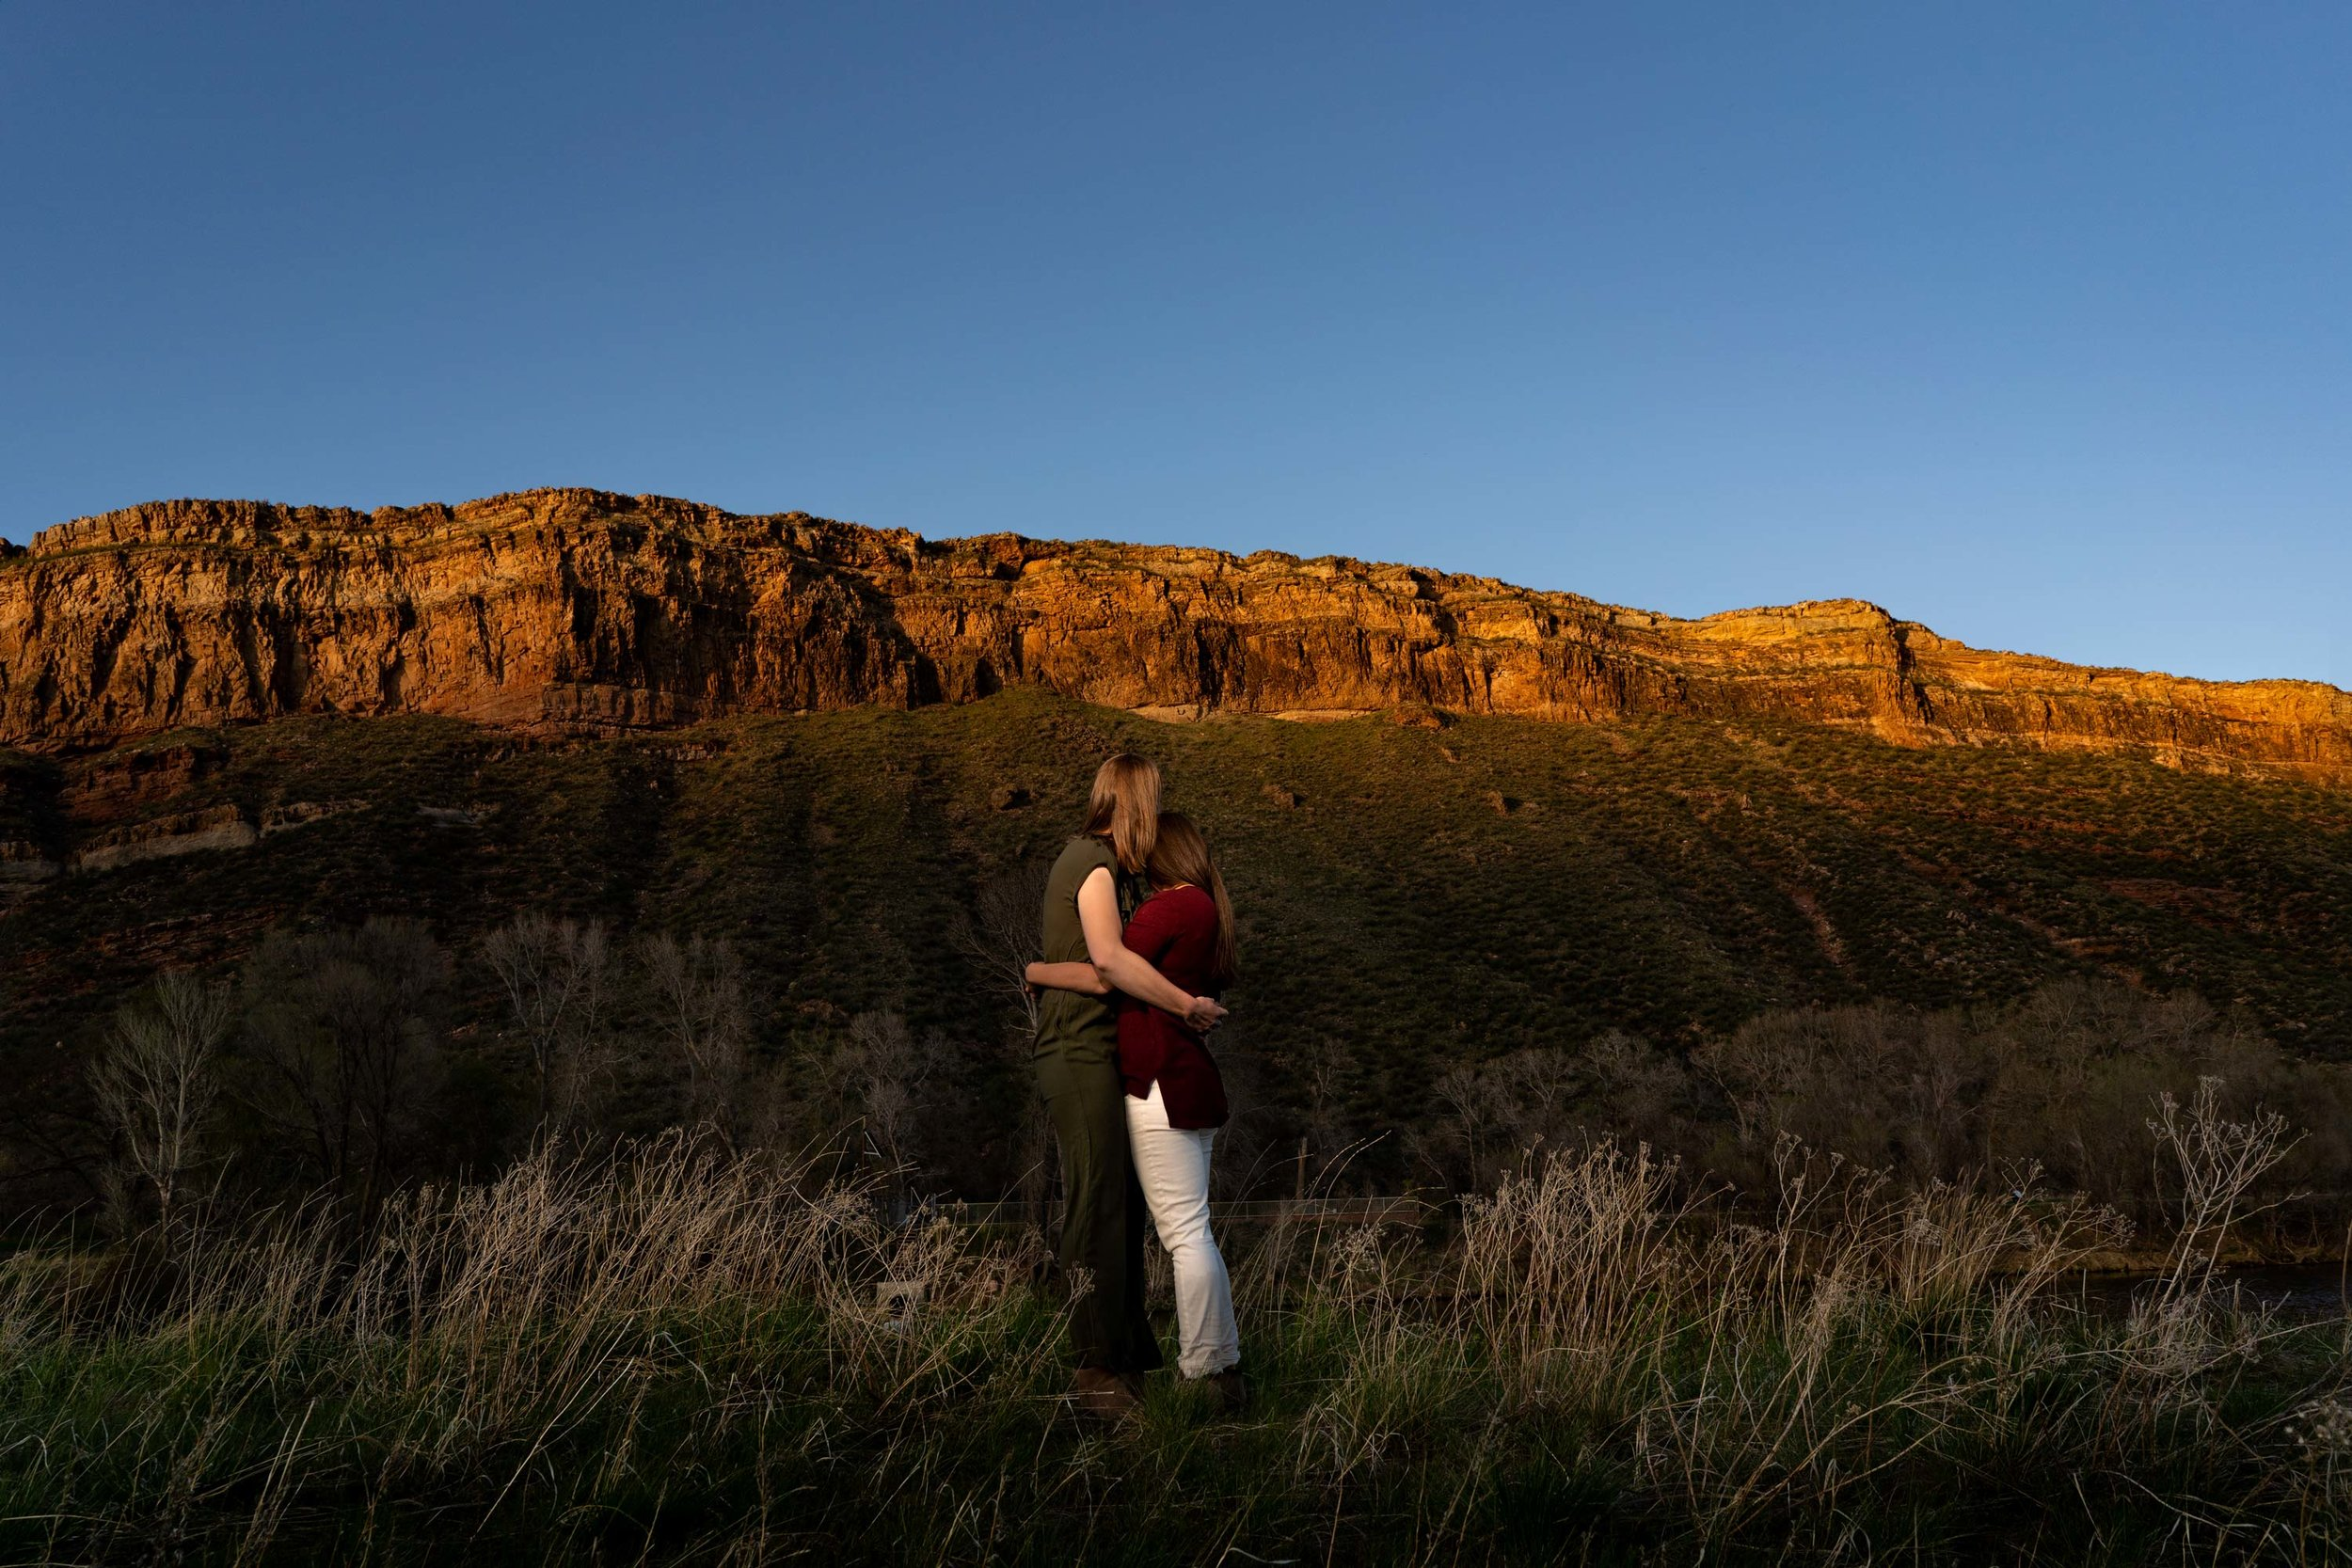 Poudre_Canyon_Engagement_Session-61.jpg